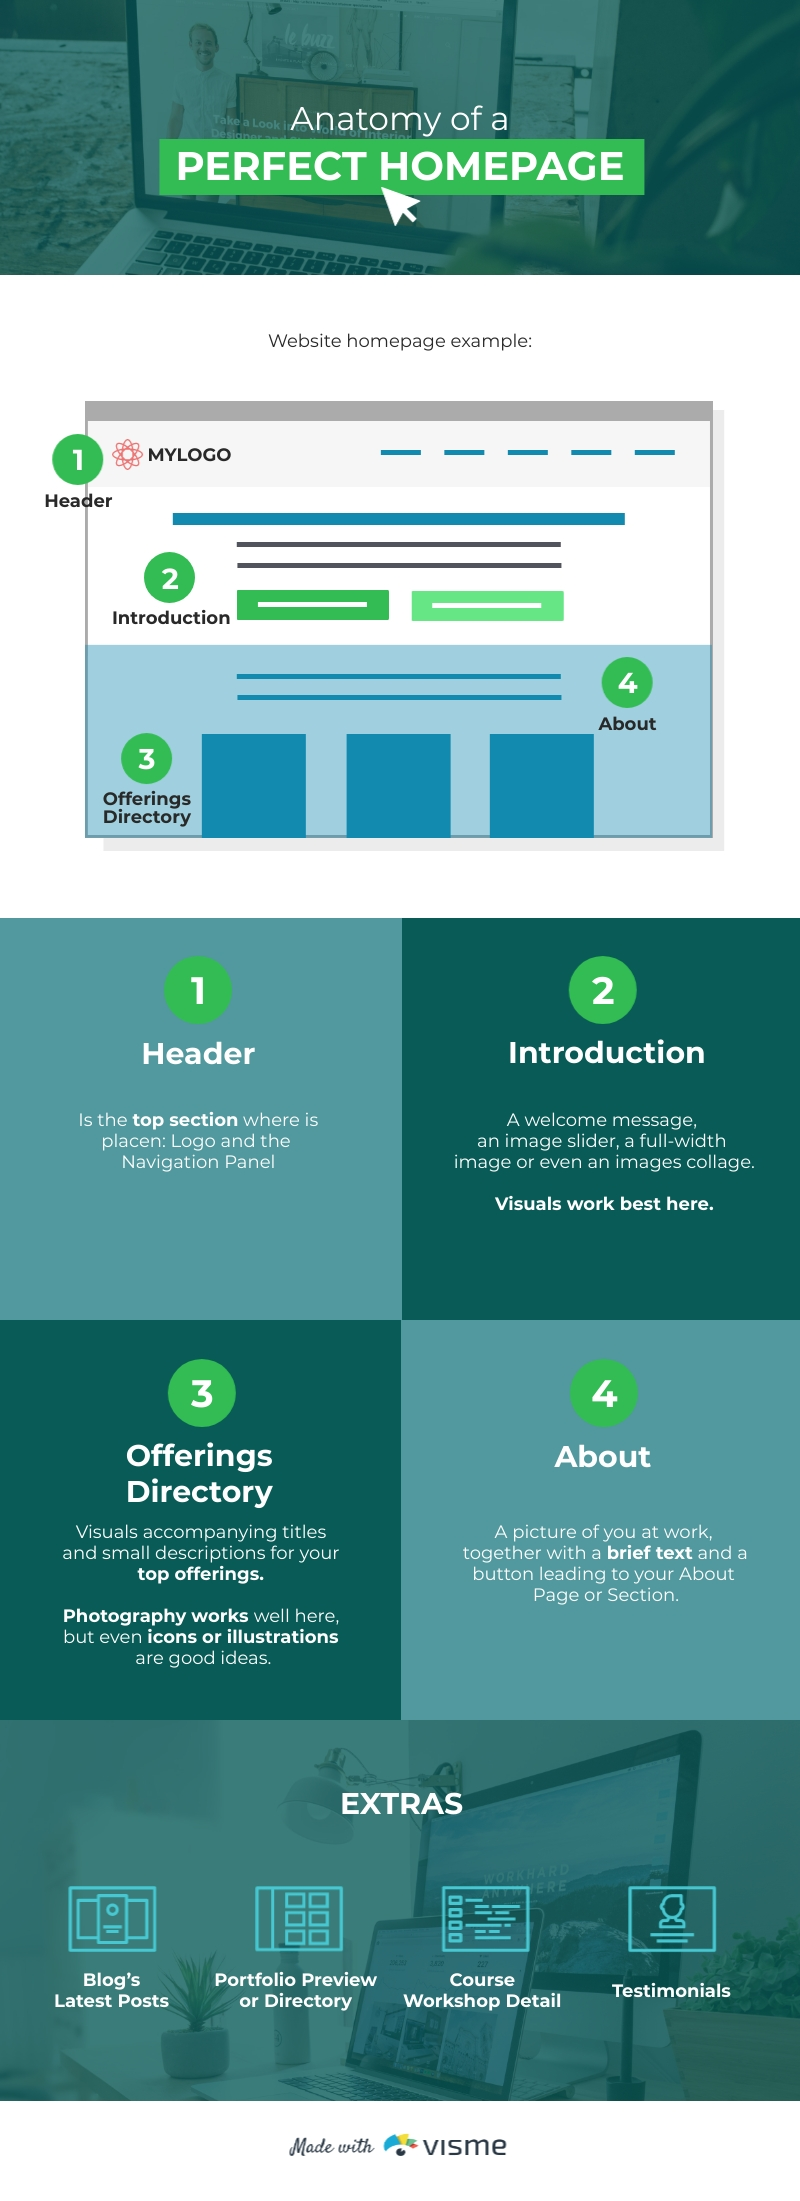 Anatomy of a Perfect Homepage - Infographic Template